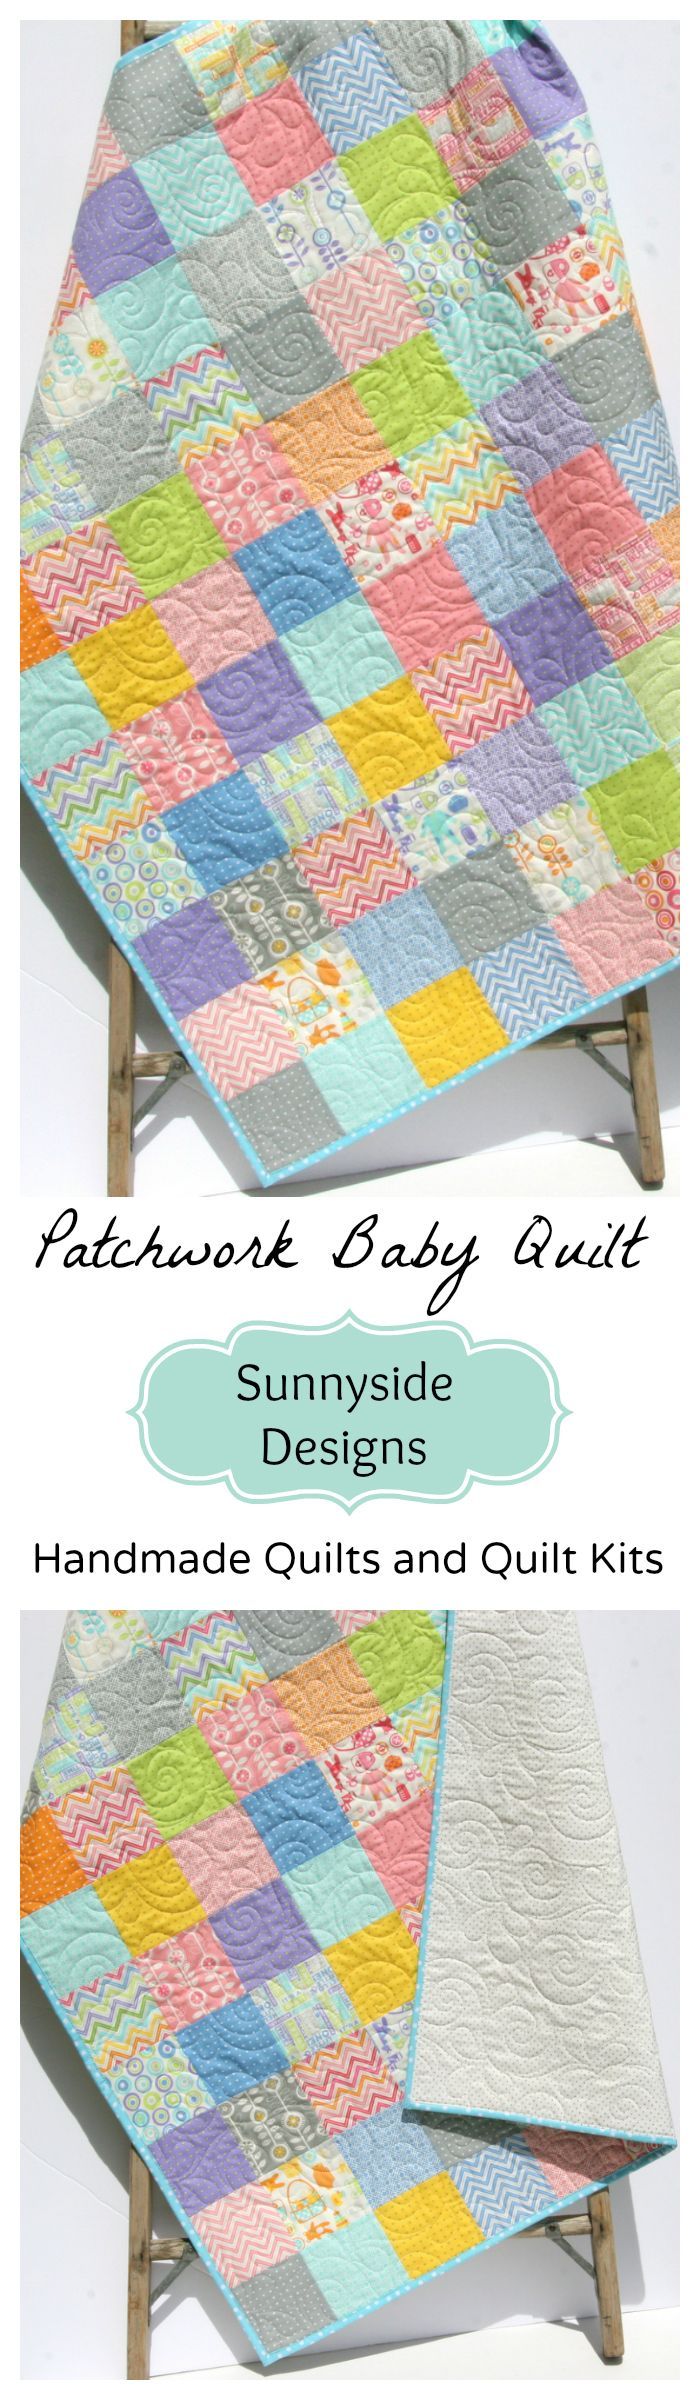 Baby Quilt Kit, Pastel Colors Gender Neutral Boy or Girl, Patchwork Baby Quilt, Handmade Quilt for Sale, Baby Quilt Kit, Easy Simple Patchwork Quilt Kit, by Sunnyside Designs